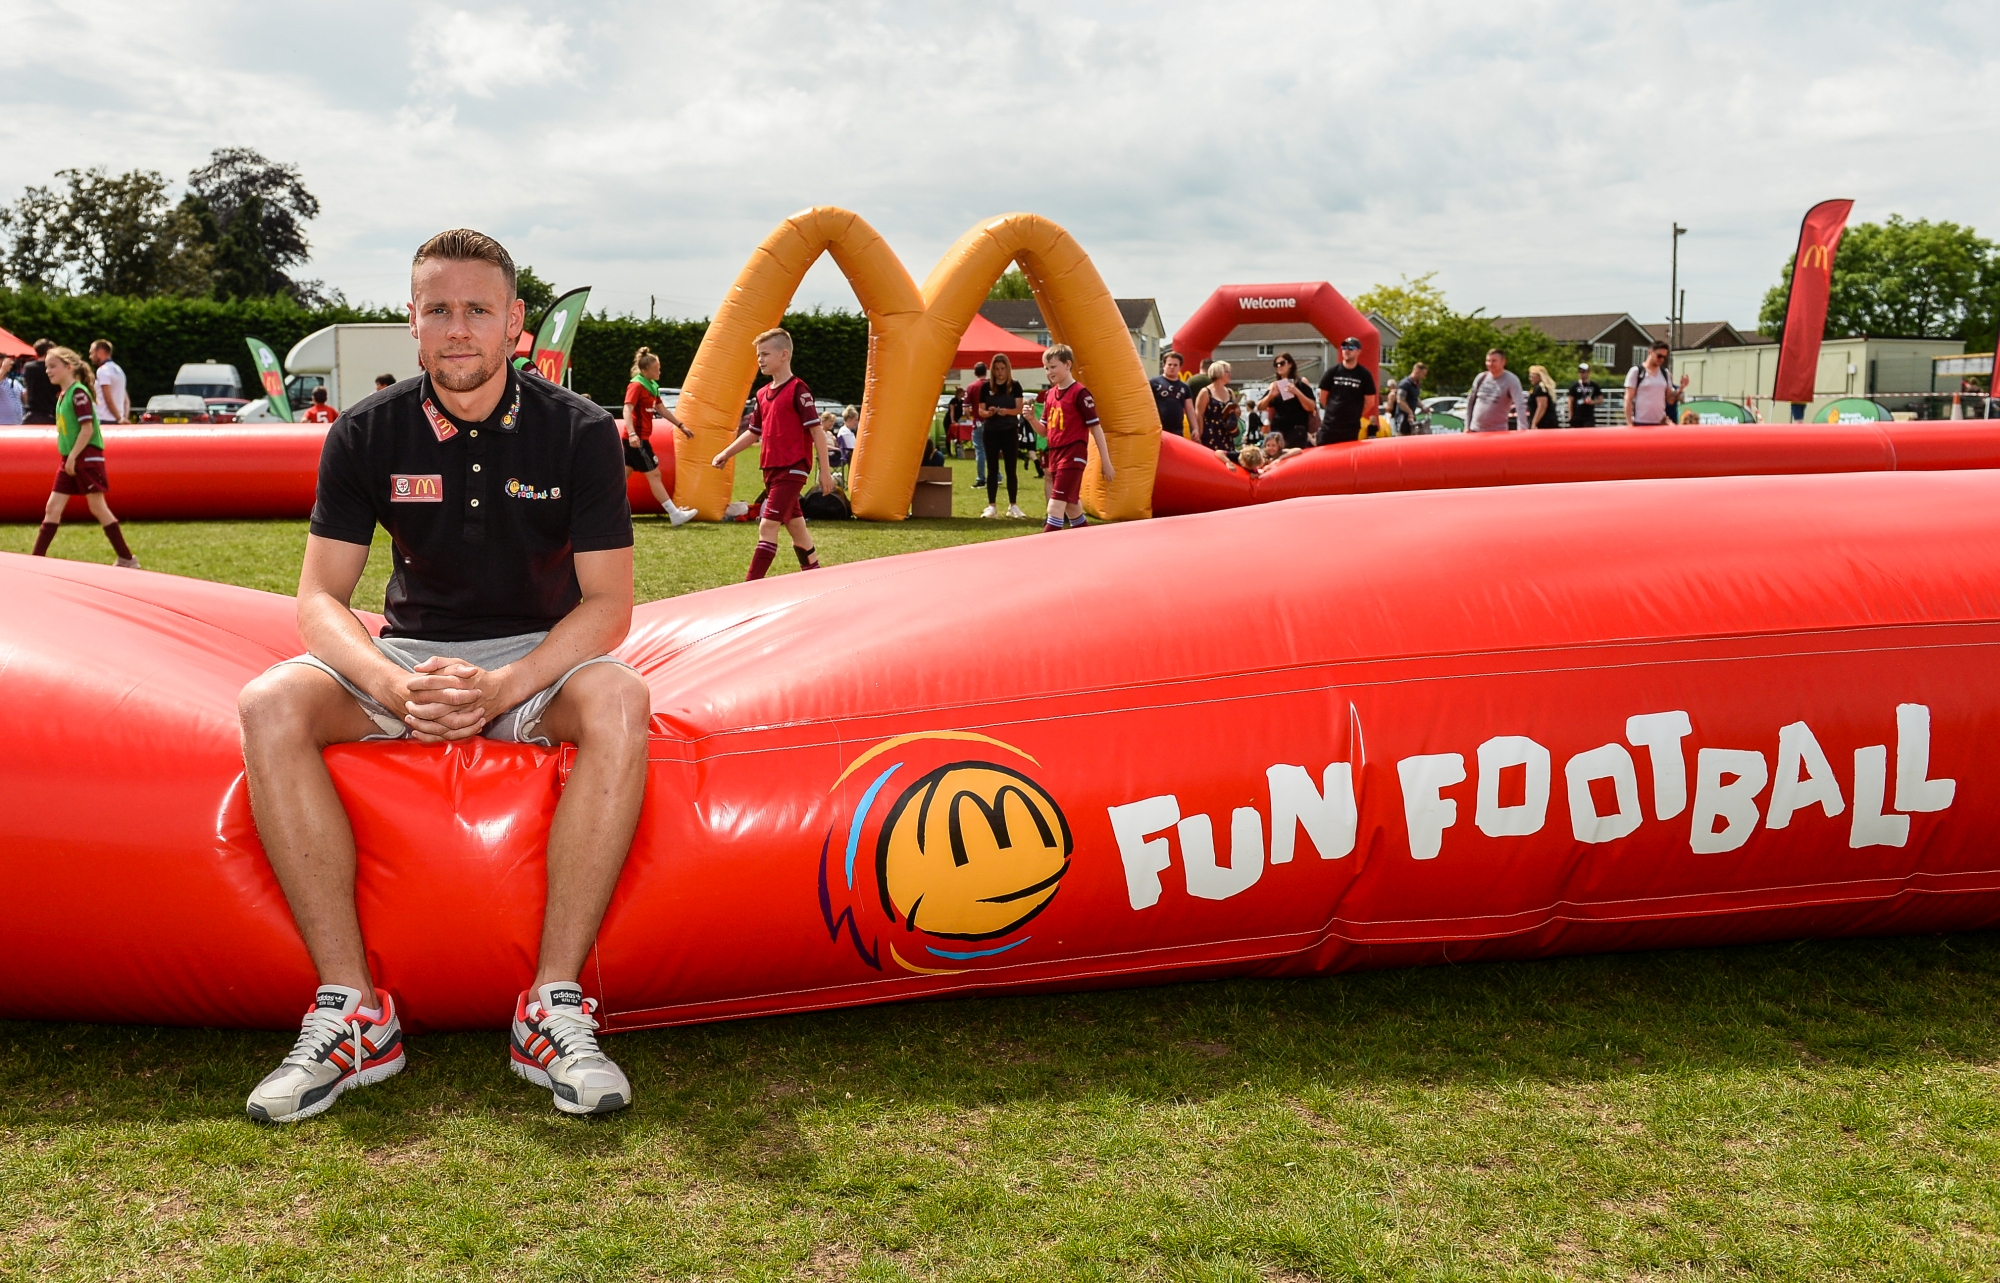 Fun Football Festival: Chris Gunter joins thousands of excited children at Undy AFC